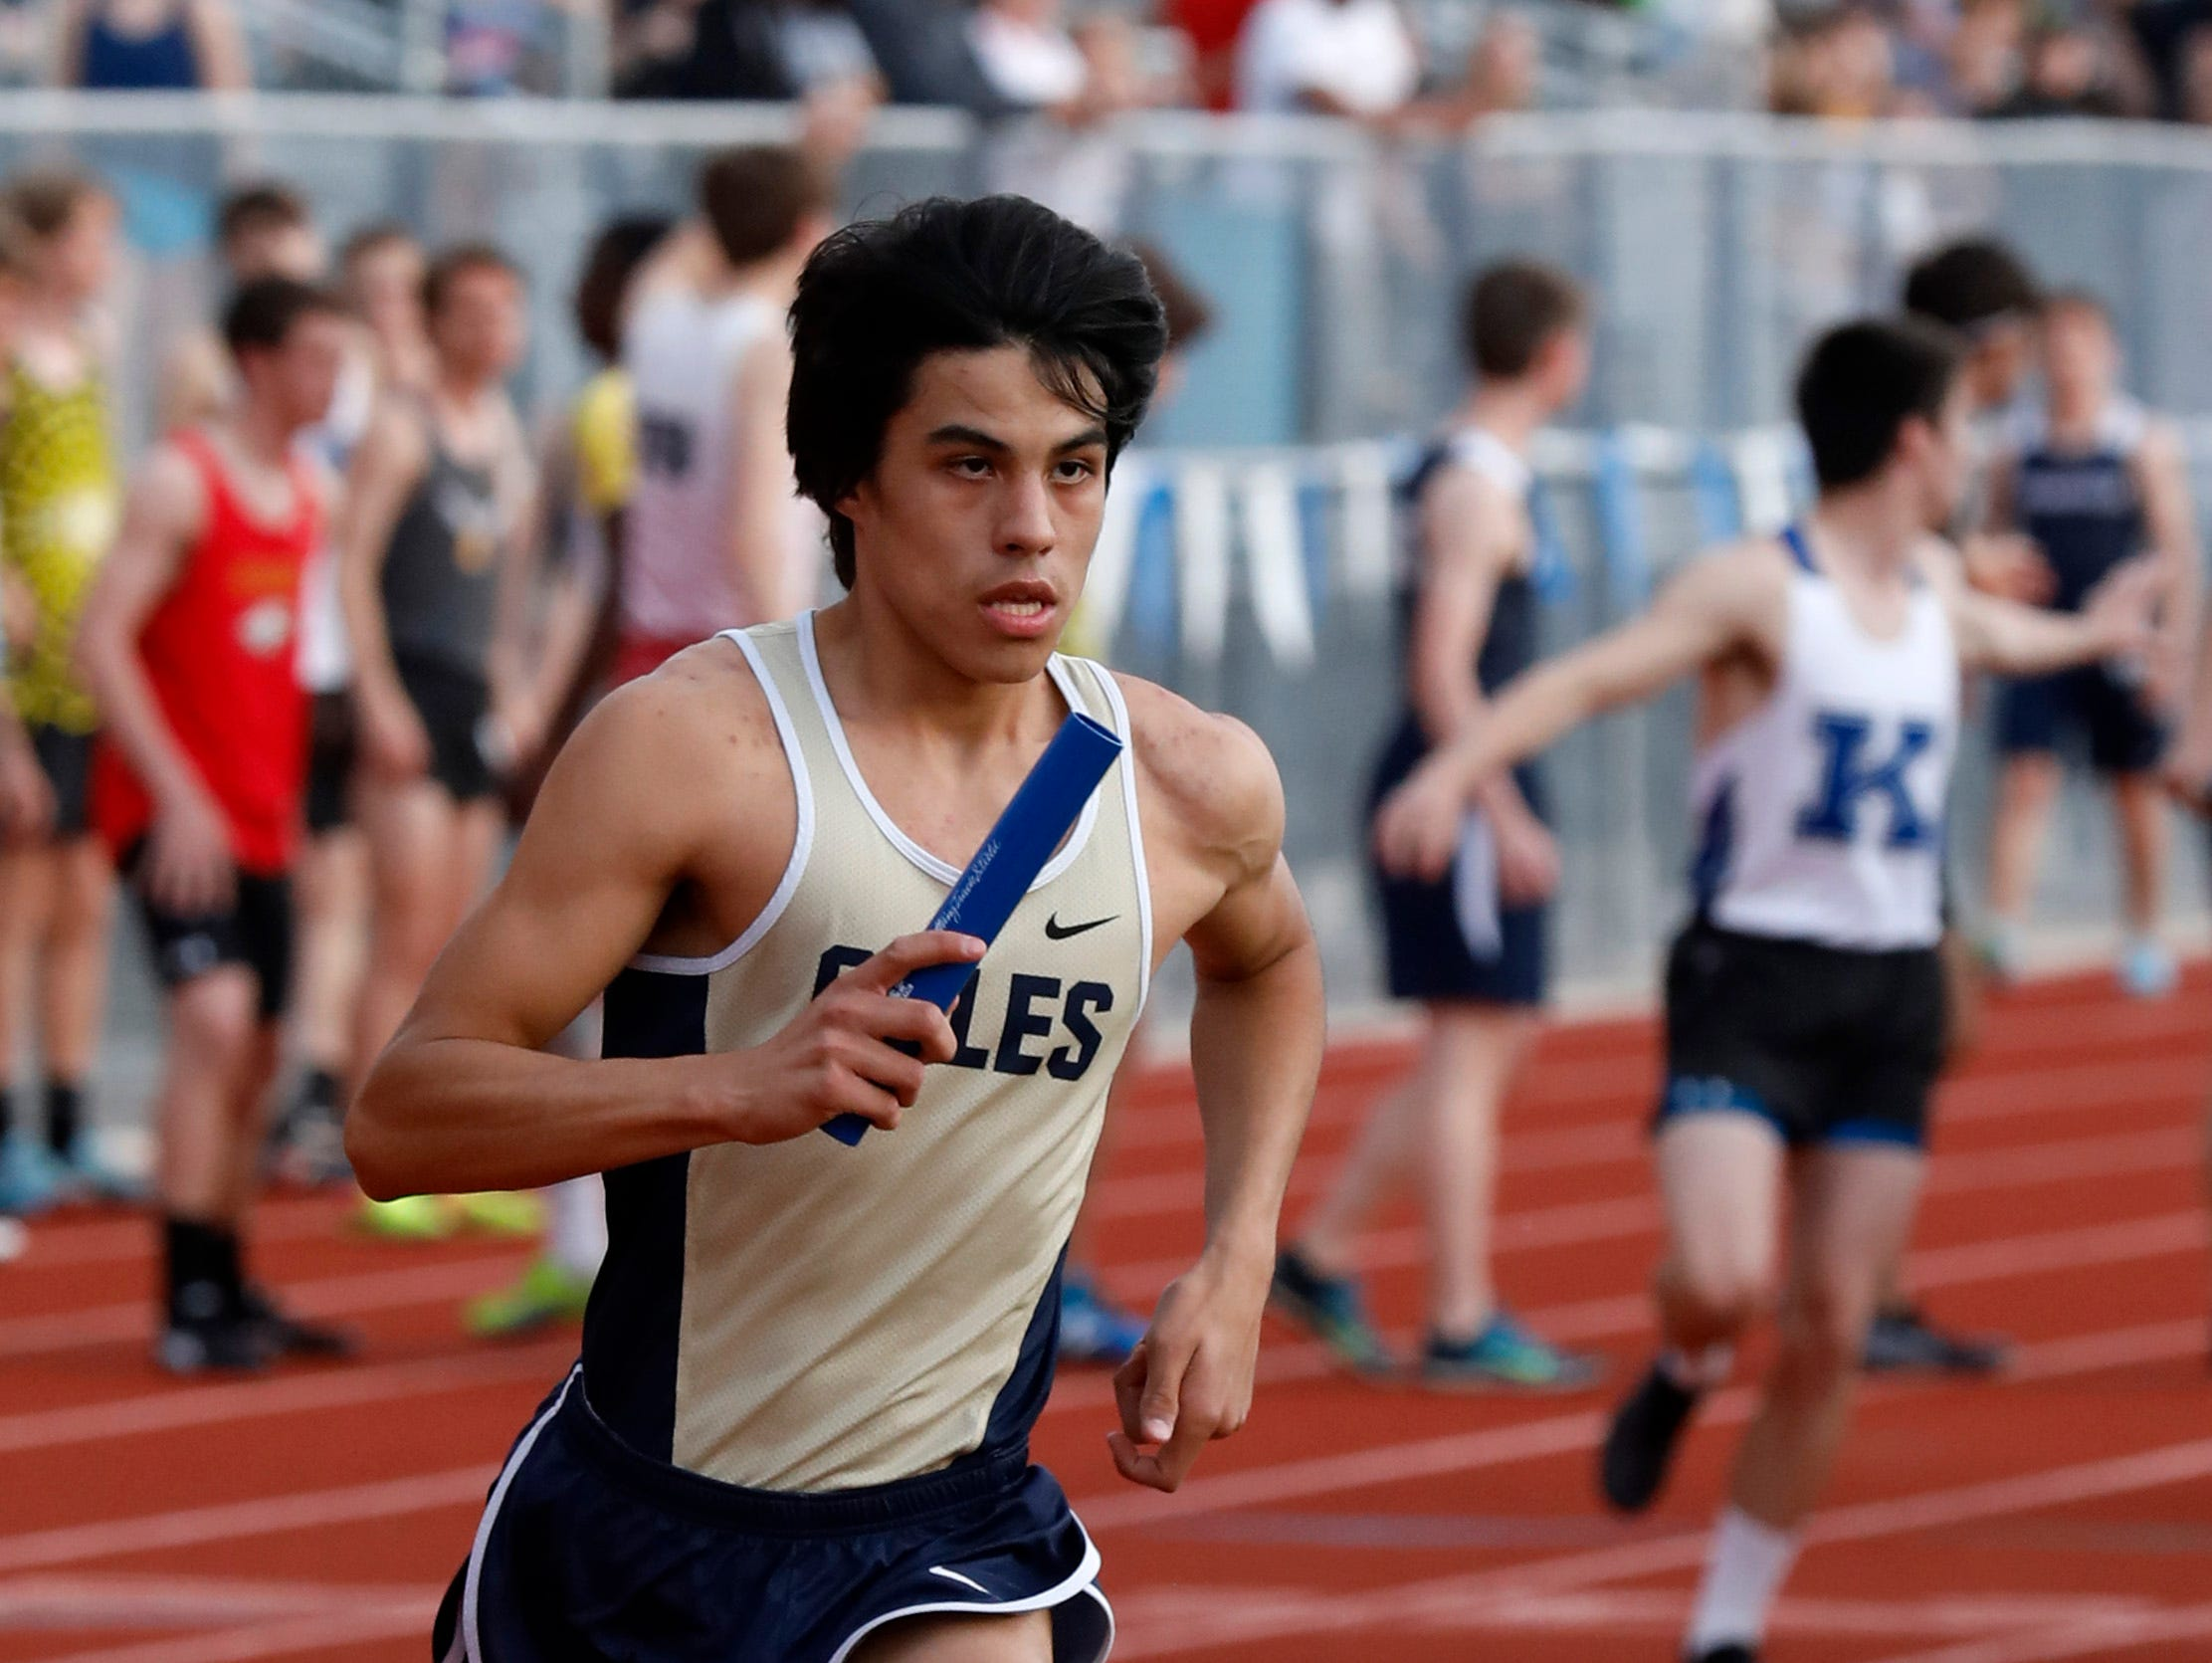 Lancaster's Ambronsio Suarez runs in the 3200-meter relay Thursday night, April 18, 2019, during the Fulton Relays at Lancaster High School in Lancaster.